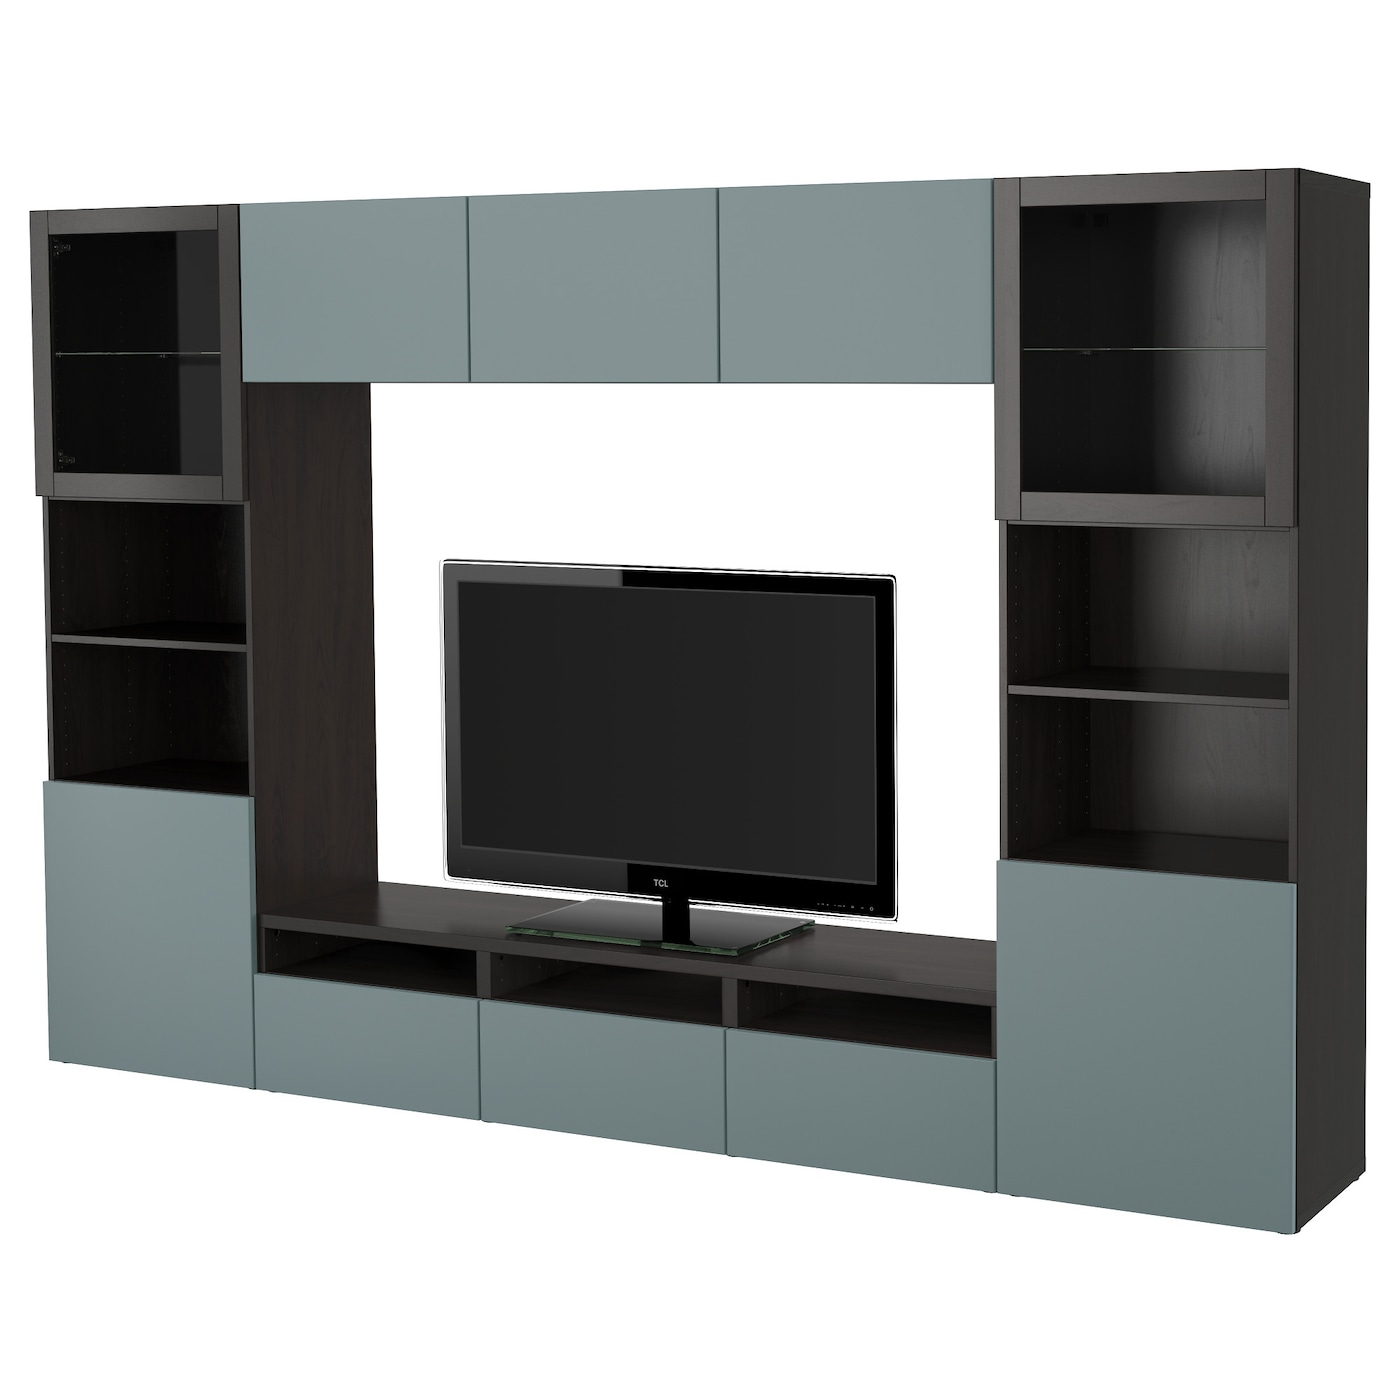 Tv Stands Media Units Ikea Ireland Dublin # Ikea Meuble Tele